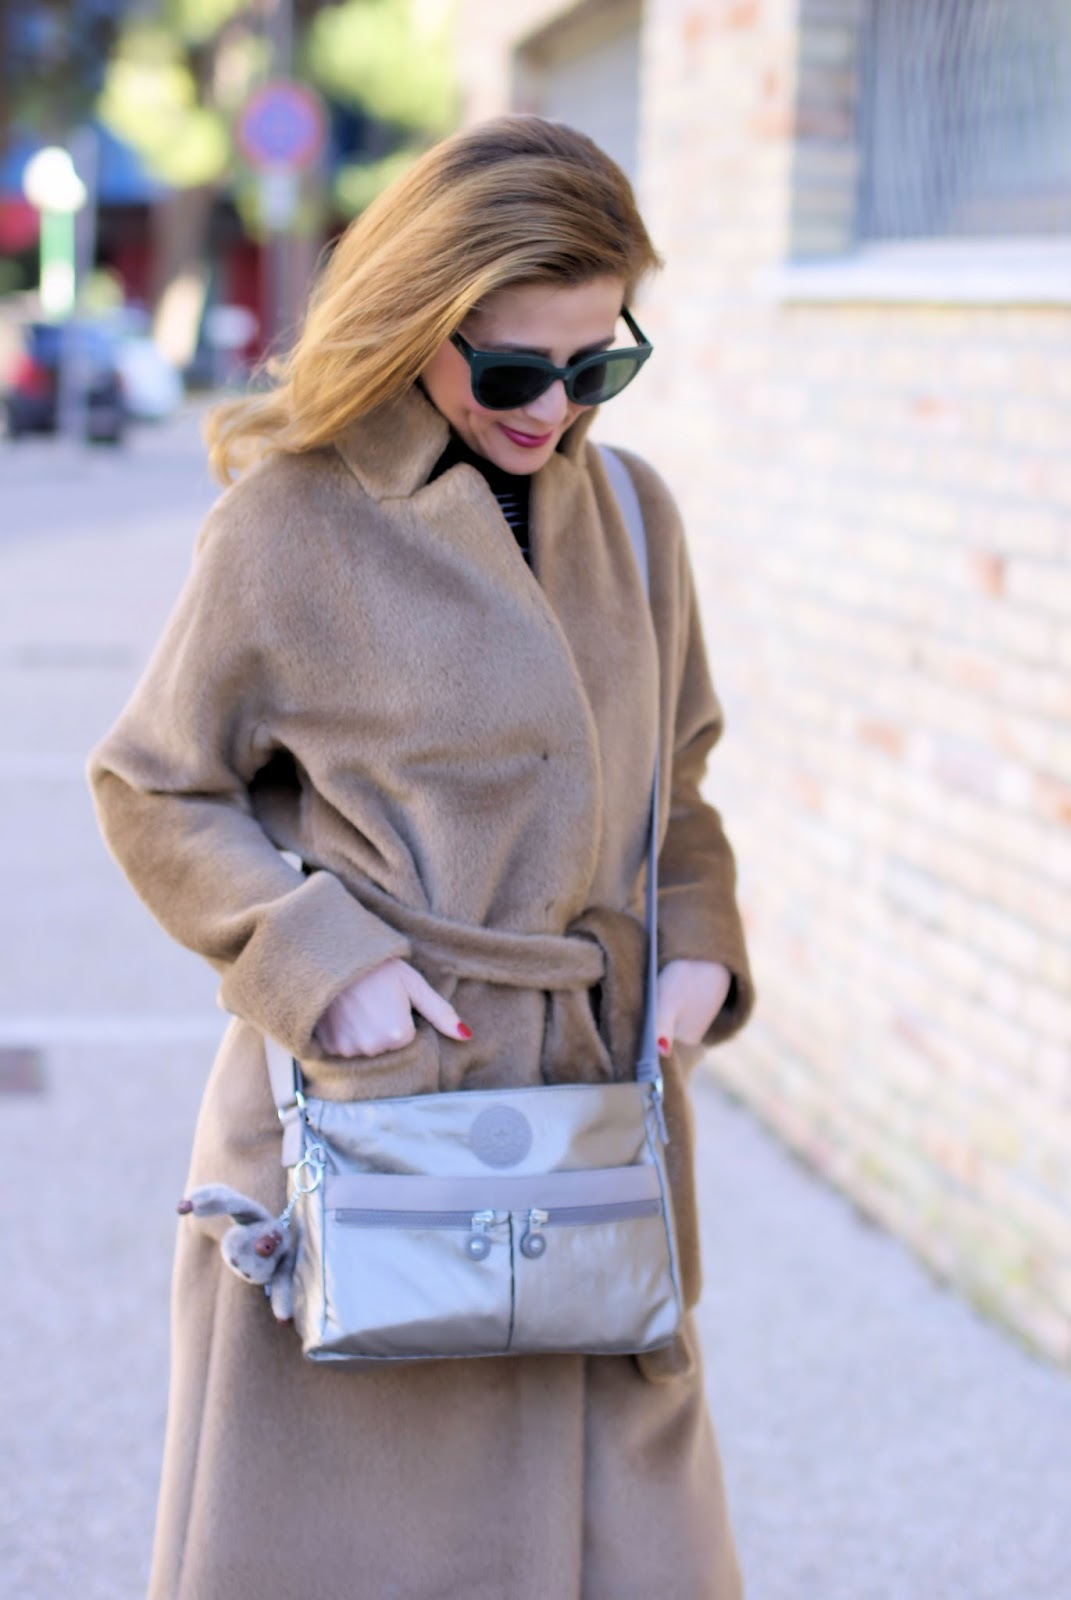 Kipling Angie metallic small shoulder bag, Max Mara Teddy Bear lookalike on Fashion and Cookies fashion blog, fashion blogger style